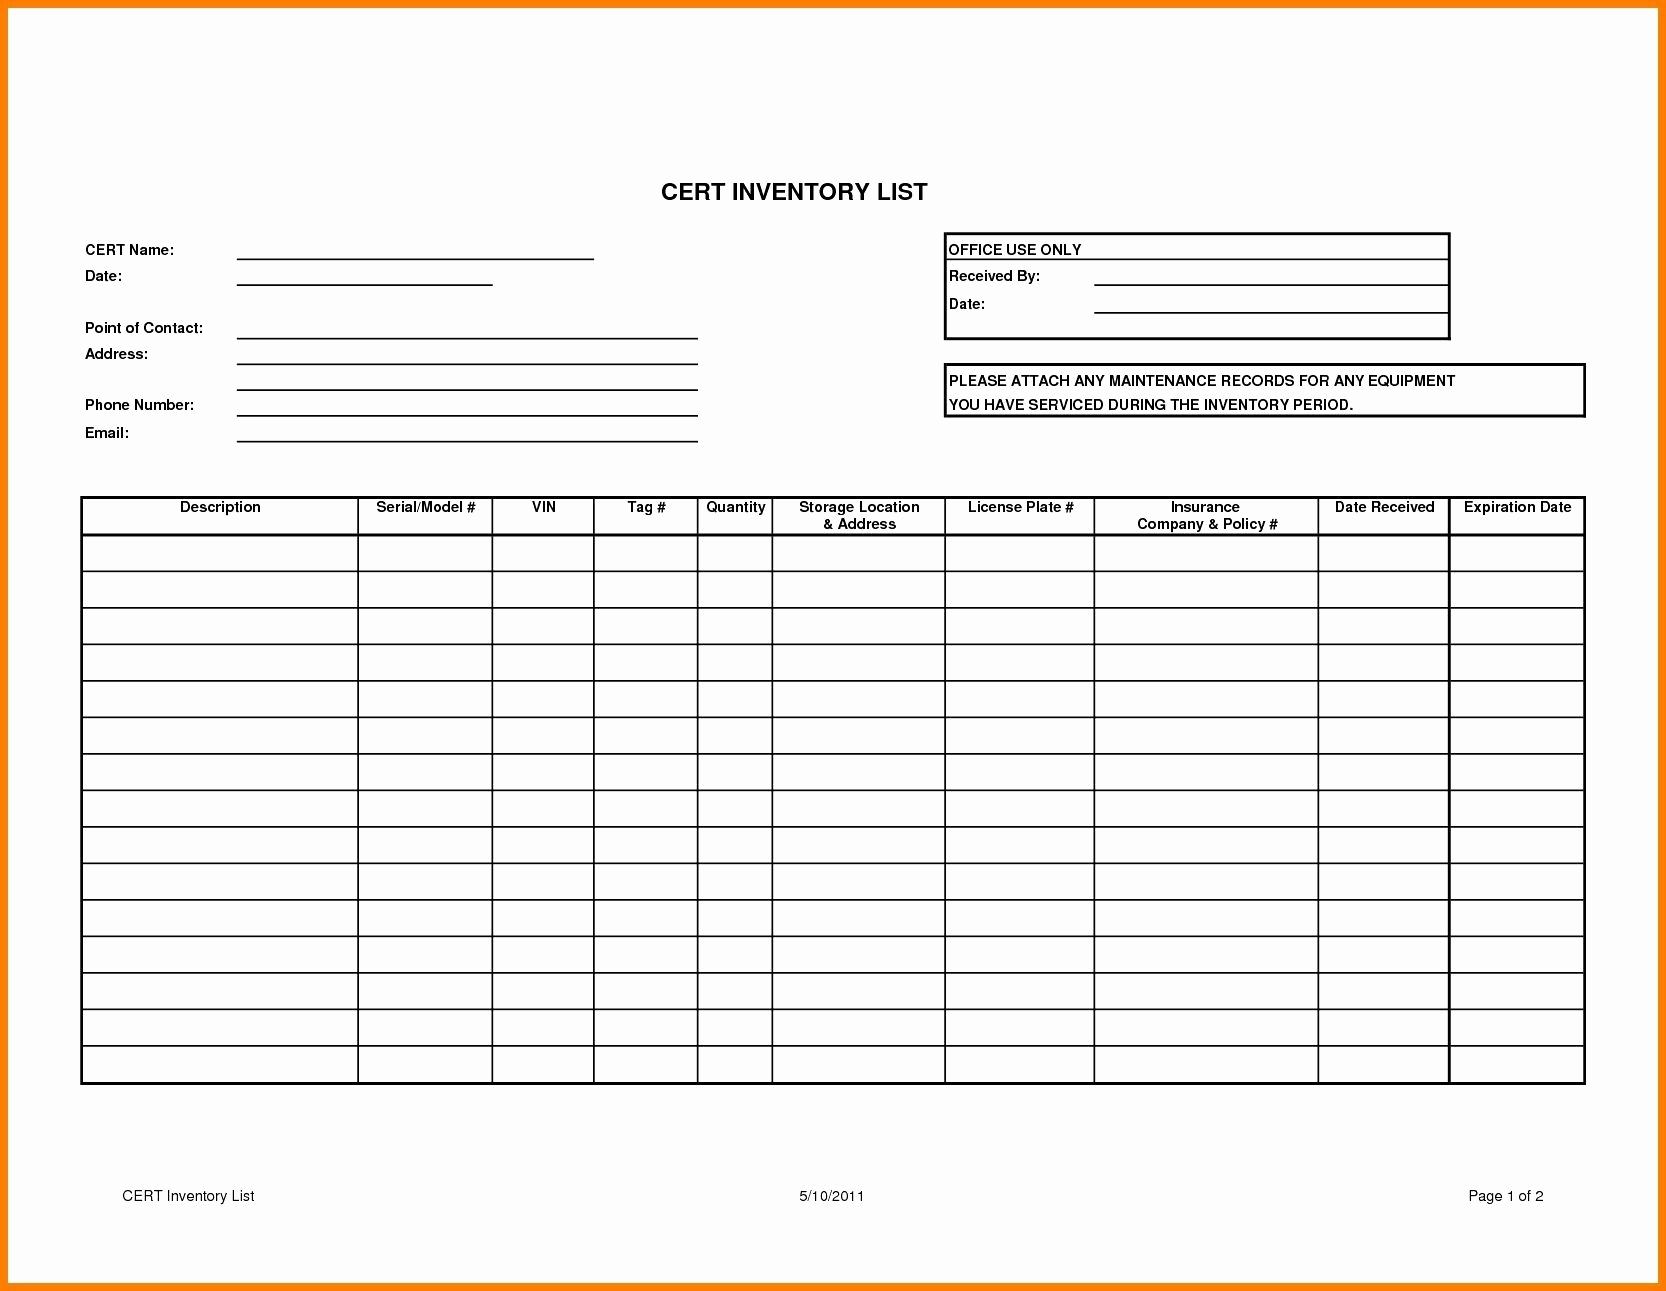 12-13 Simple Inventory List Template - Lascazuelasphilly